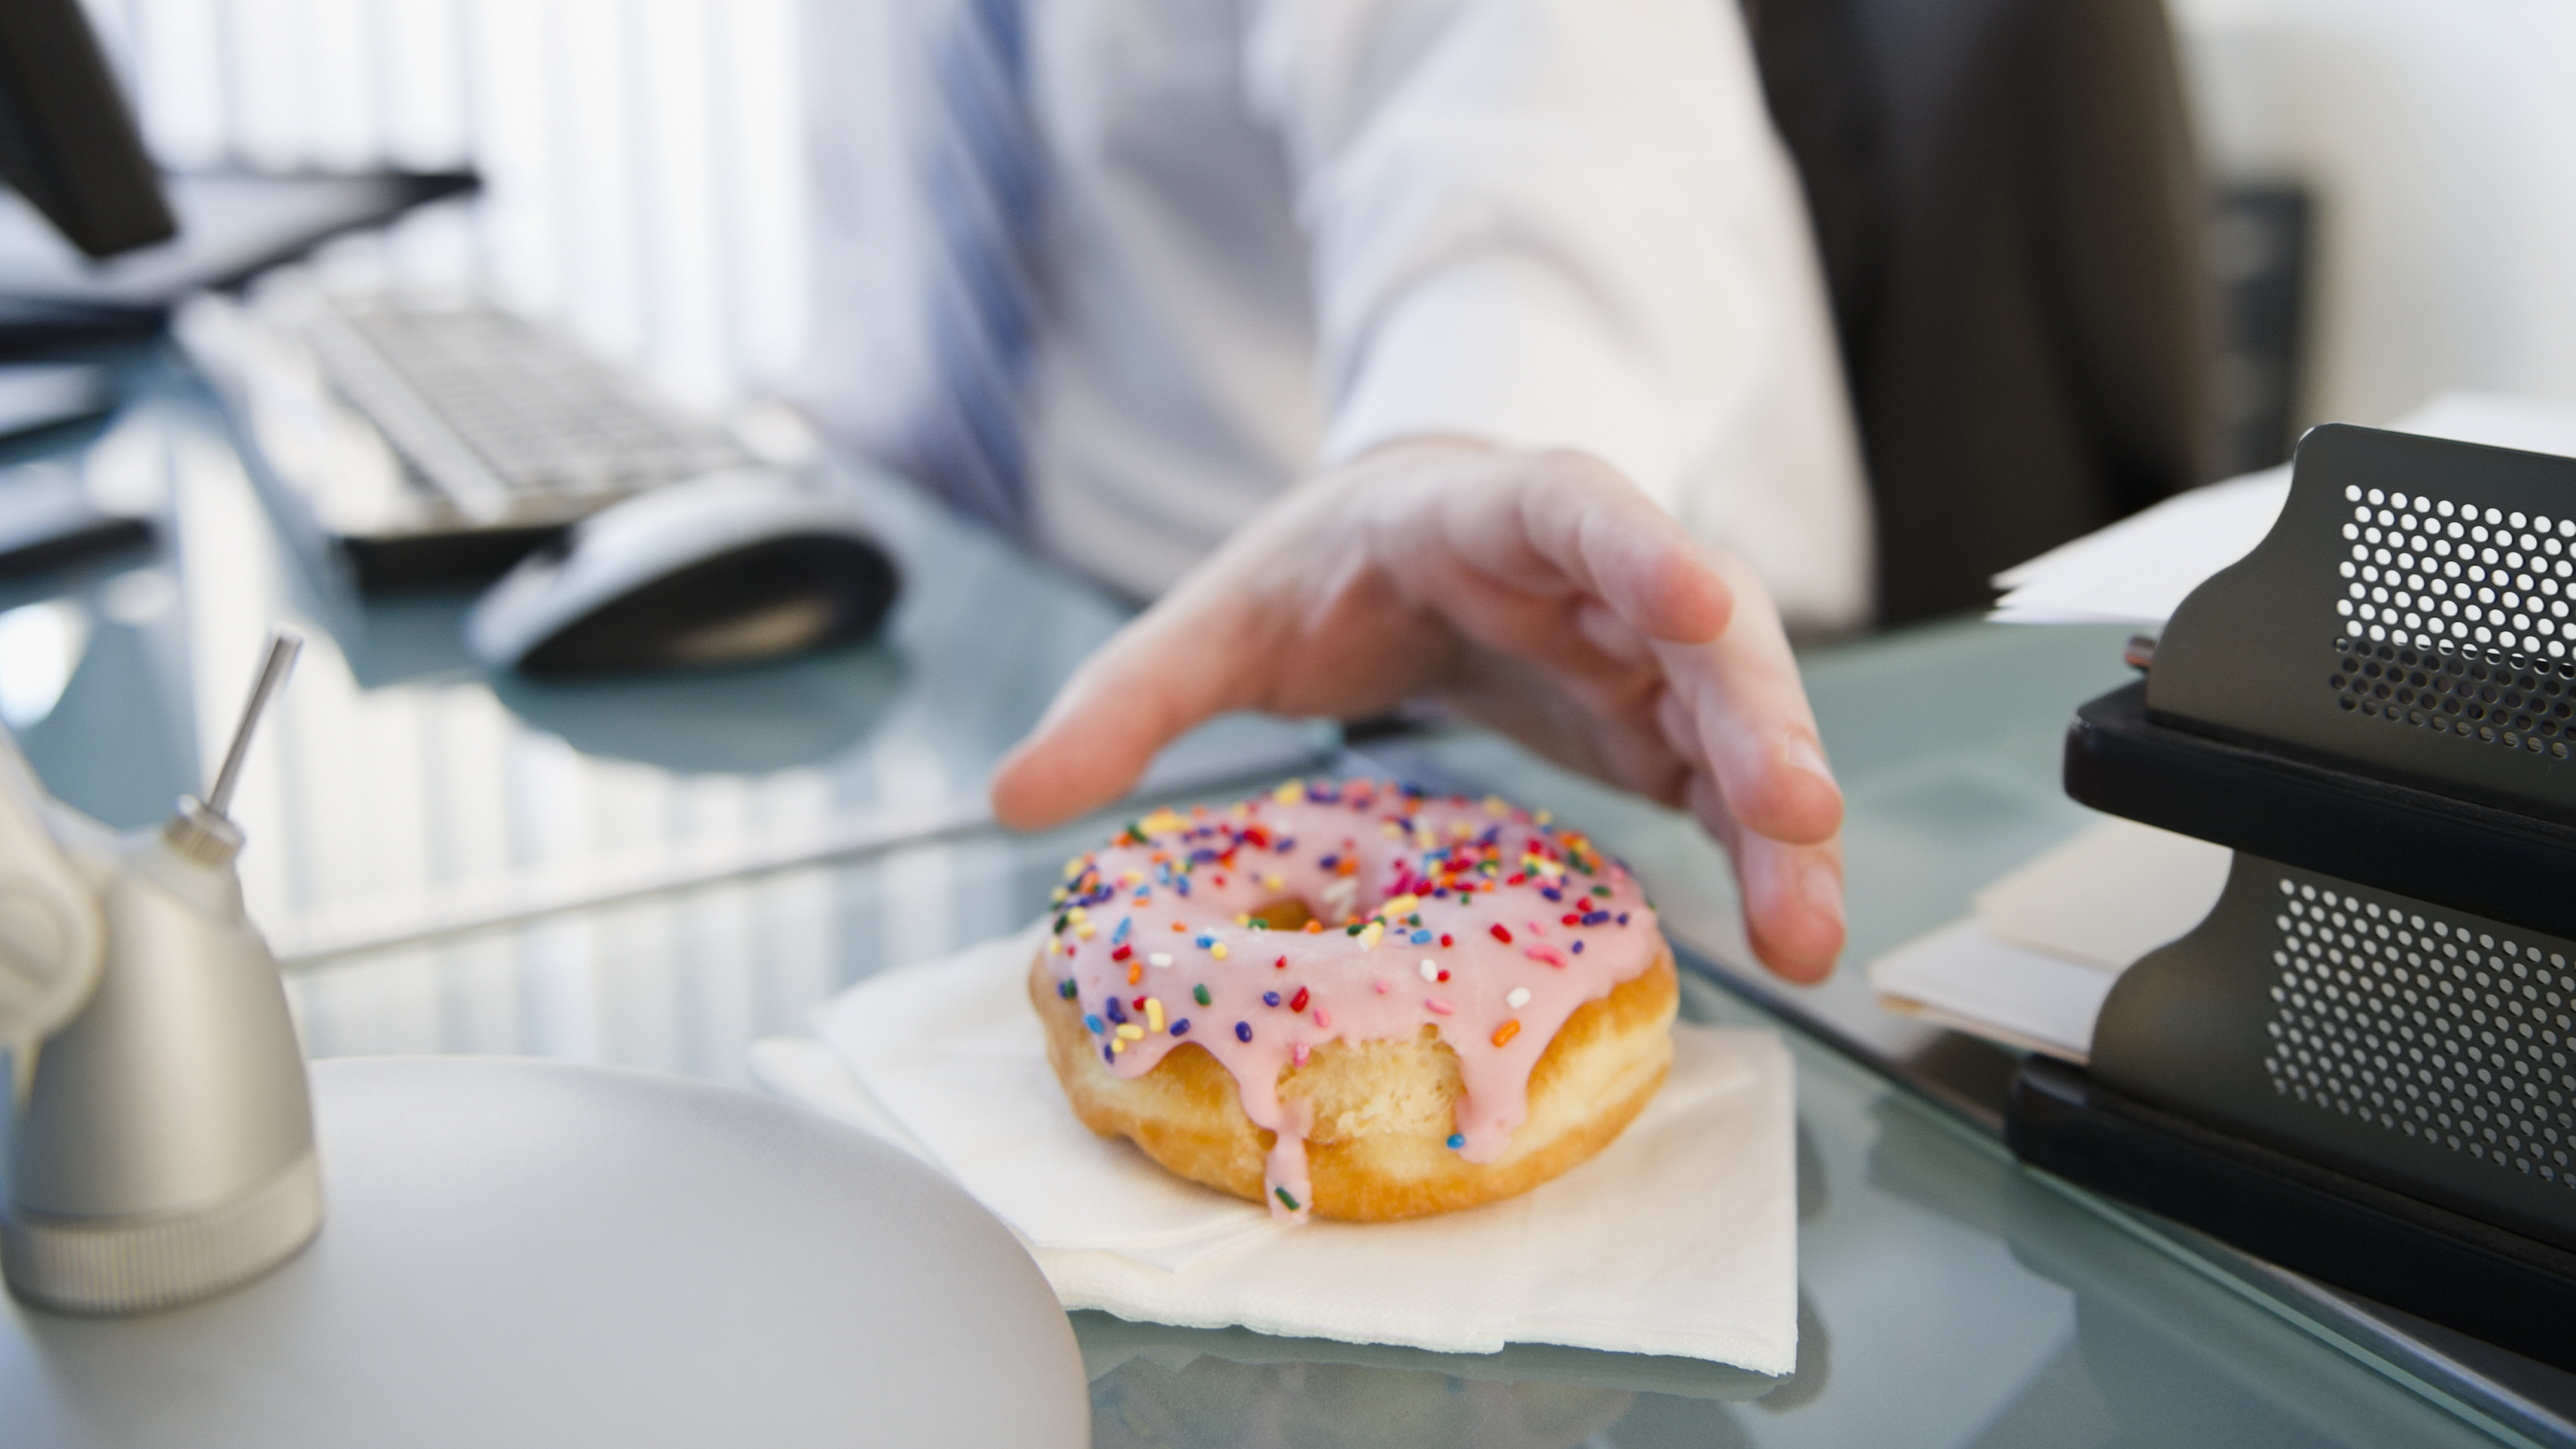 Targeting Overweight Workers With Wellness Programs Can Backfire